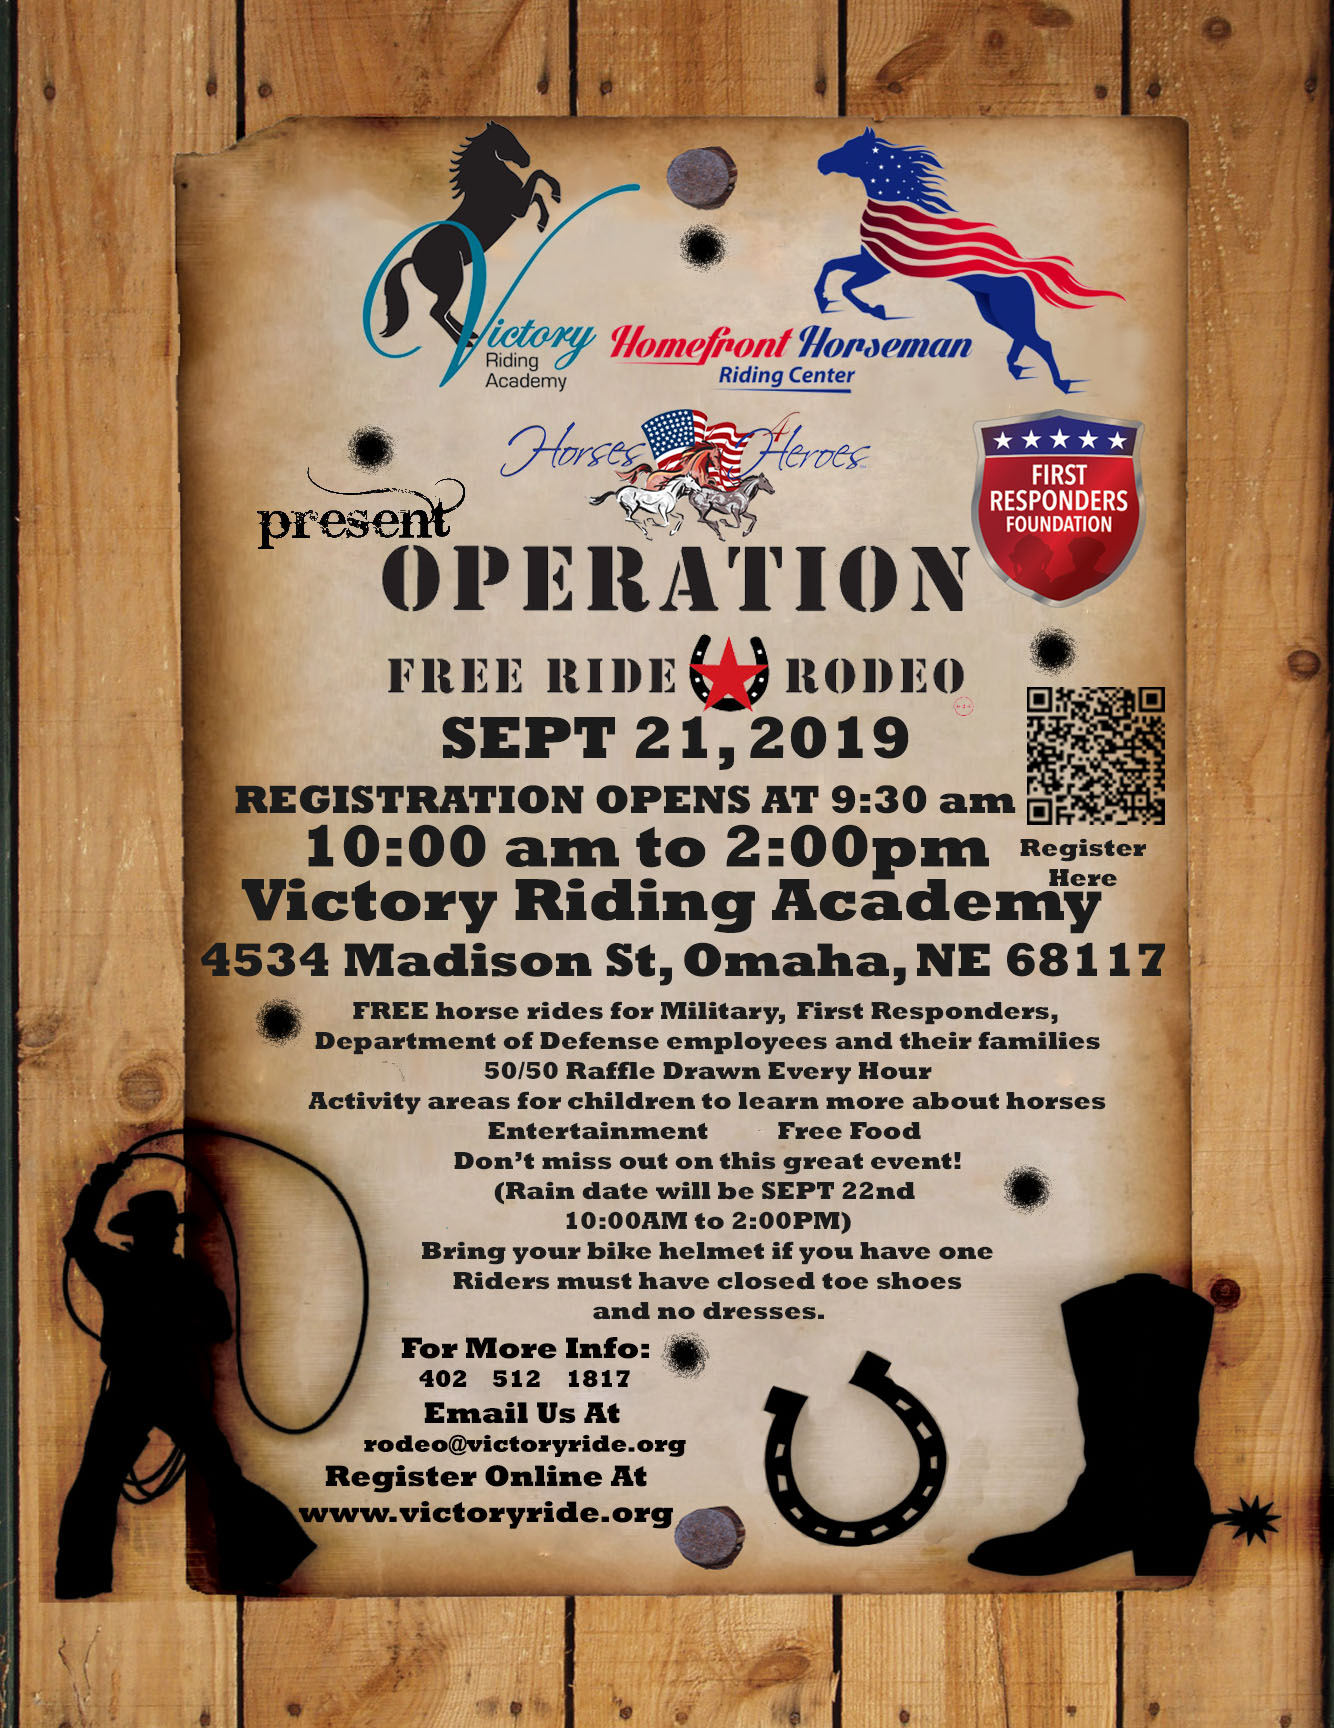 Operation Free Ride Rodeo